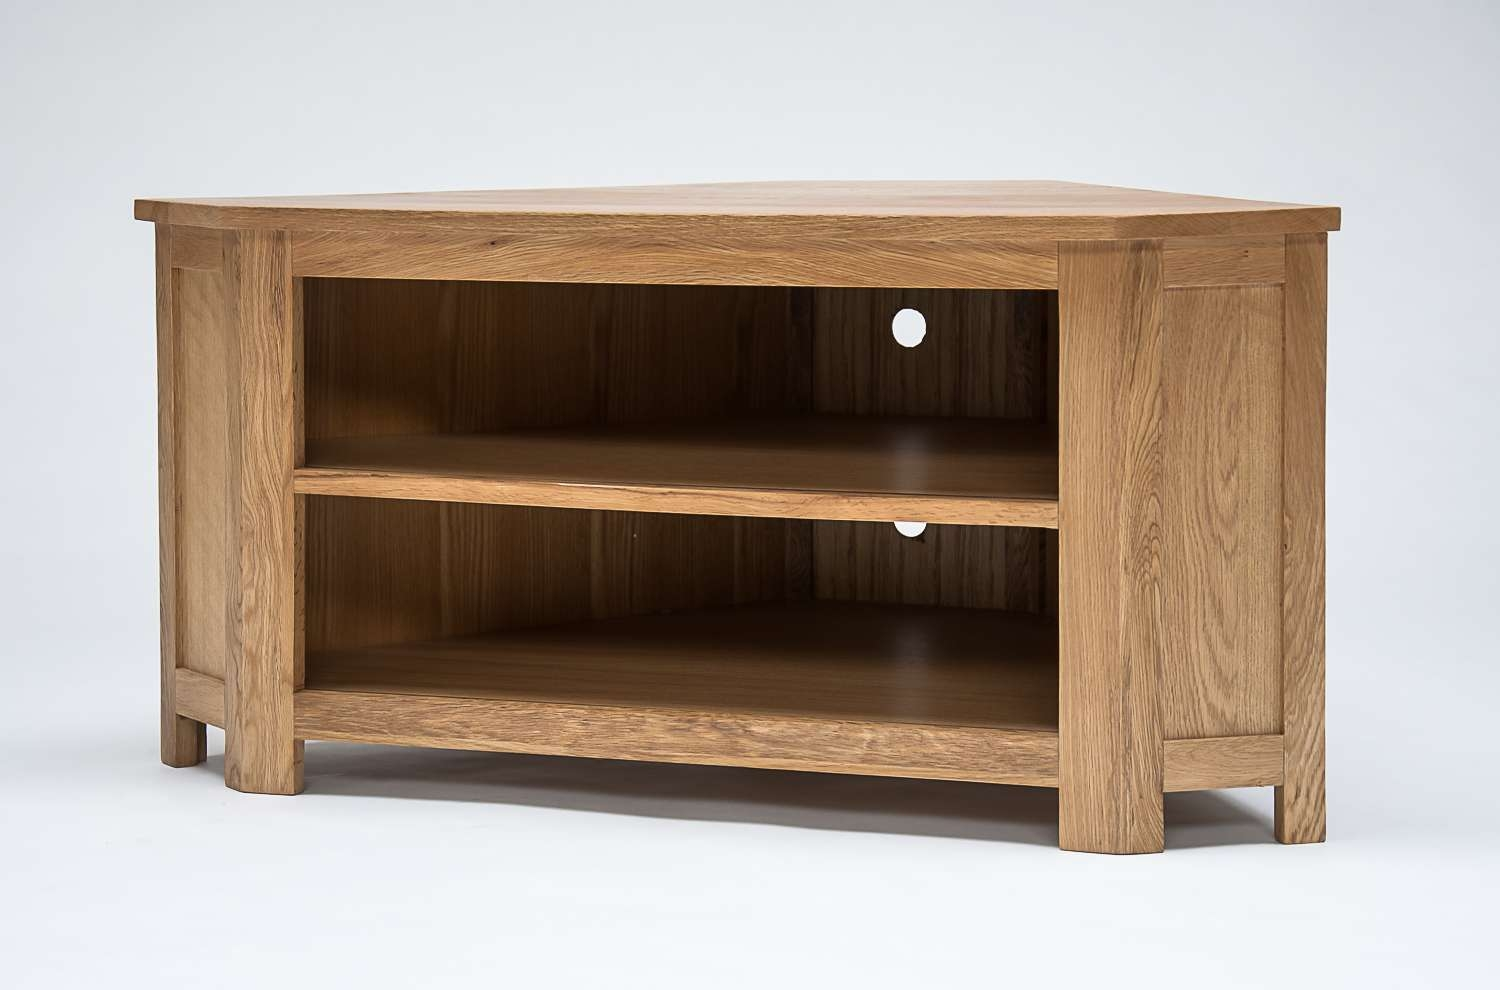 Lansdown Oak Low Corner Tv Cabinet | Oak Furniture Solutions Regarding Corner Tv Cabinets (View 15 of 20)